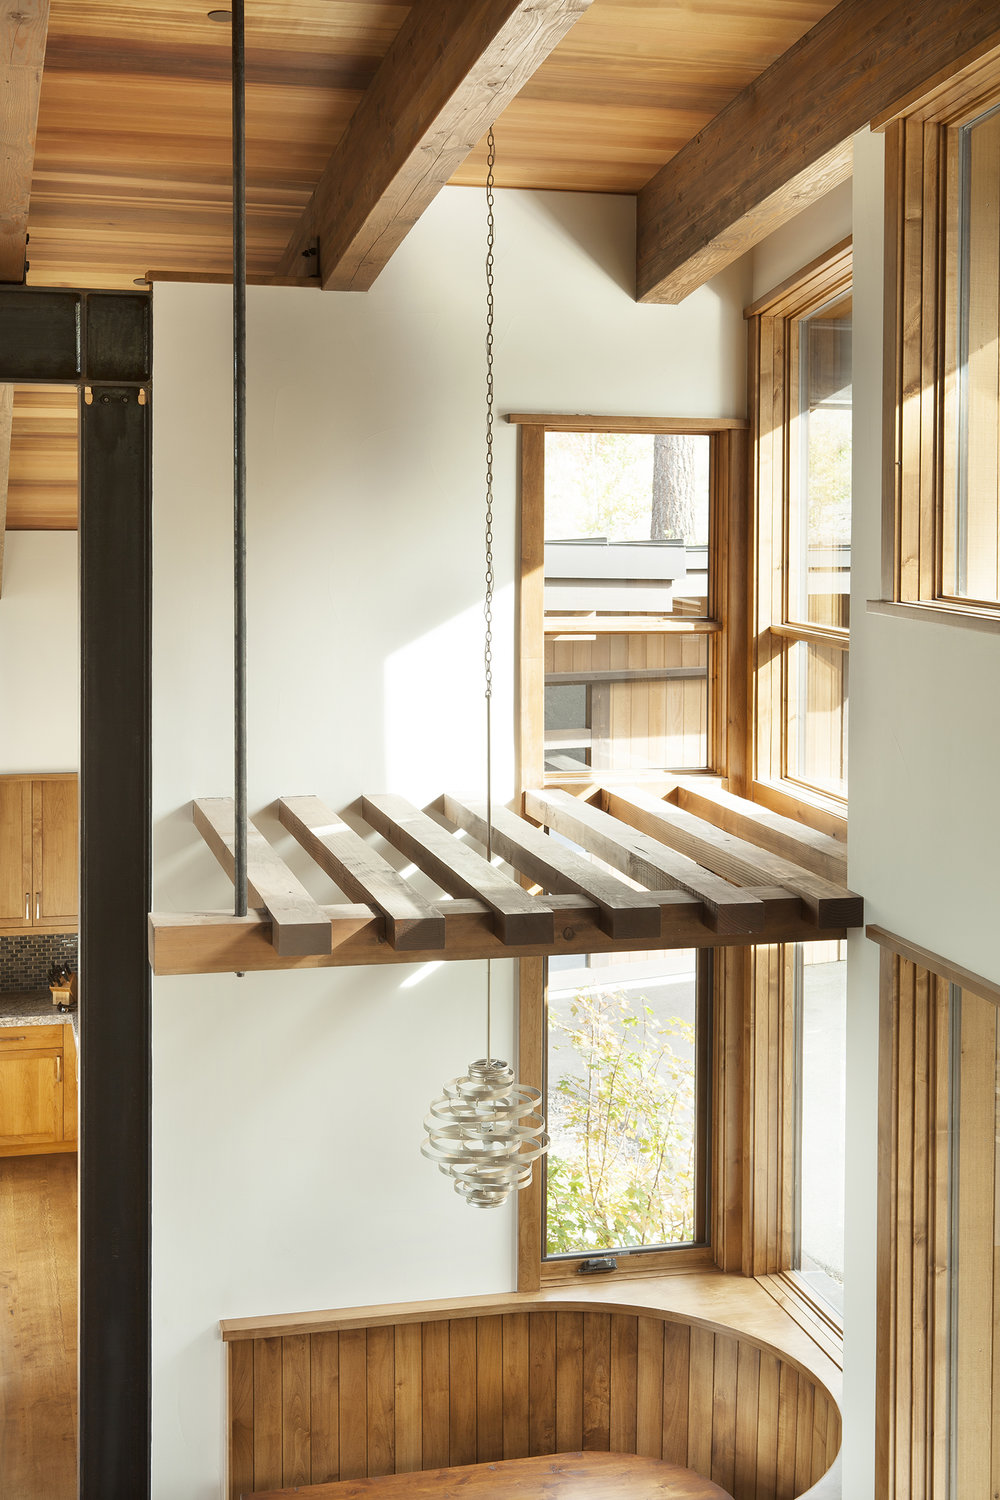 Lot 483_Stairwell View_Detail.jpg